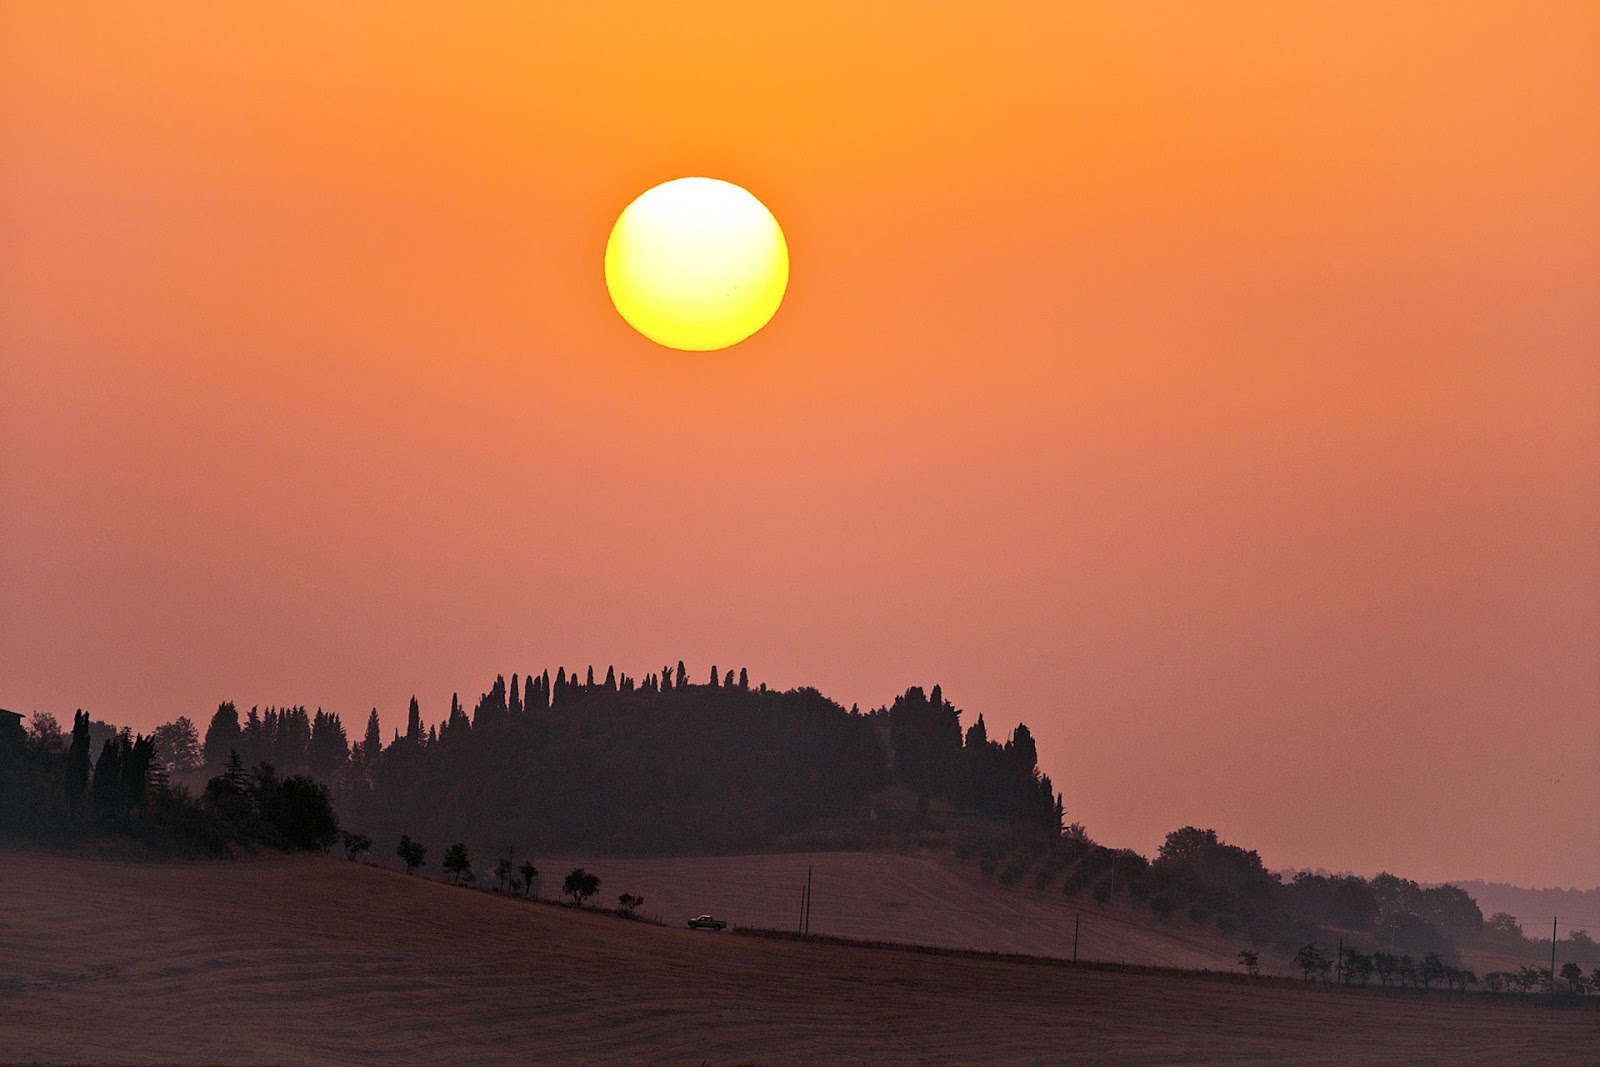 Spectacular Tuscan sunset seen in Montecatini Alto, Italy.